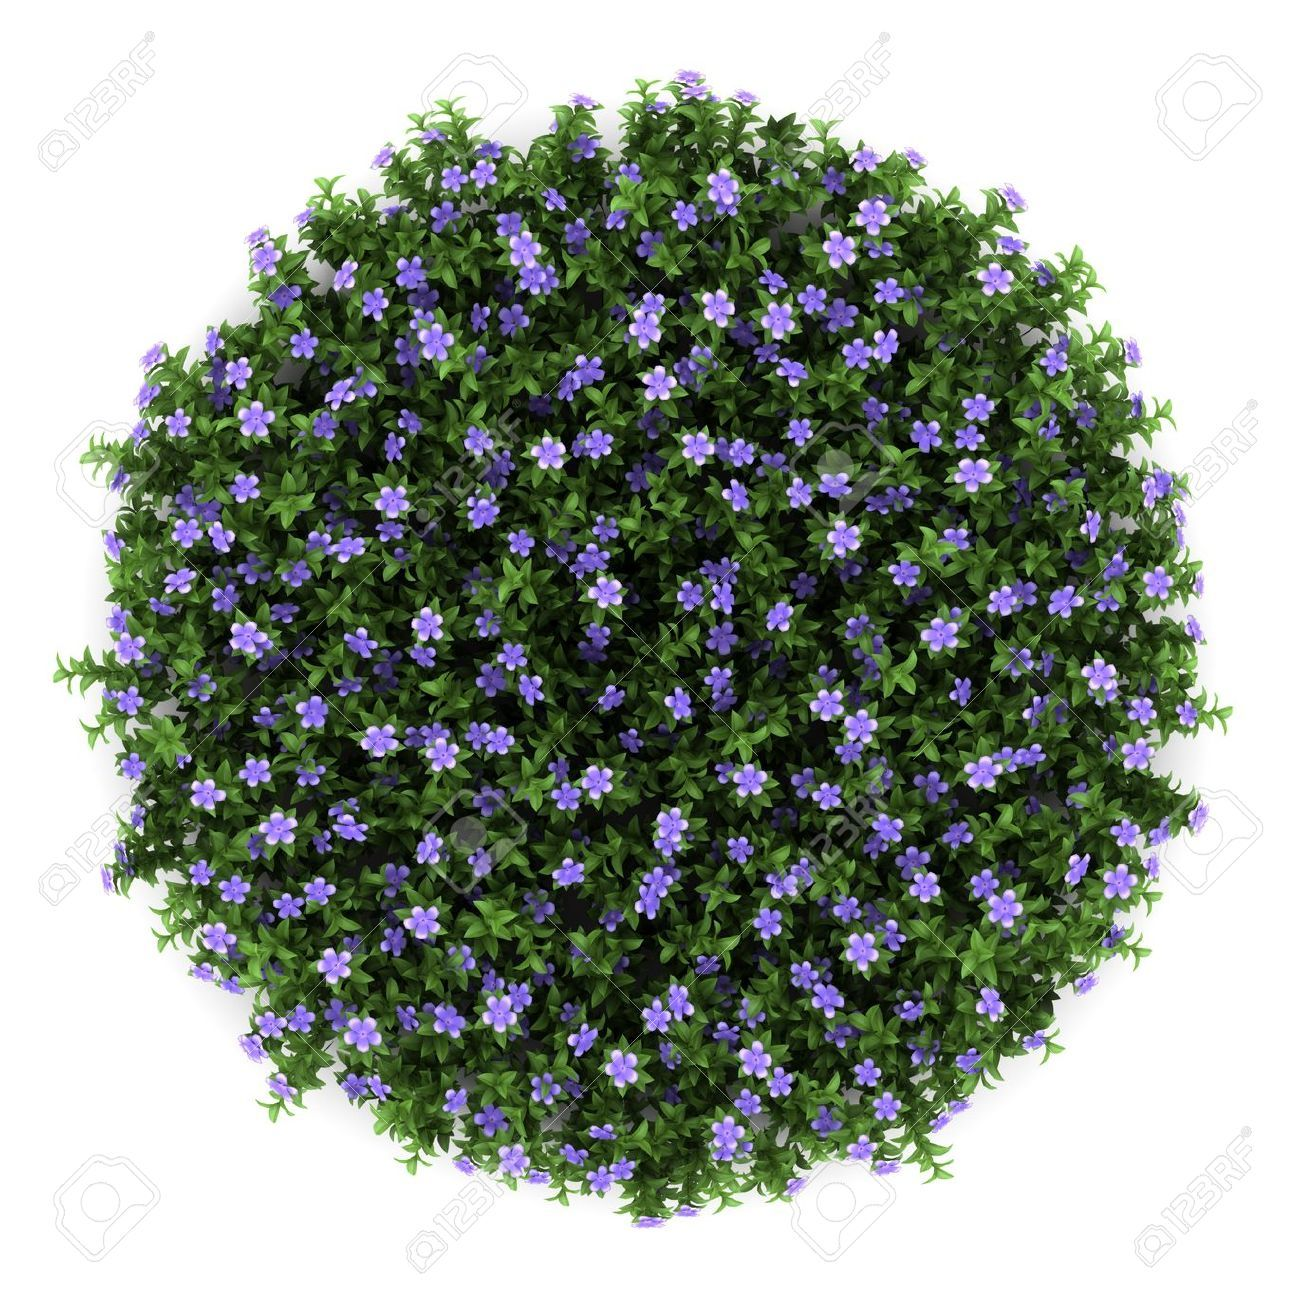 Top View Flower Png Google Search Trees Top View Shrubs For Landscaping Flowering Trees